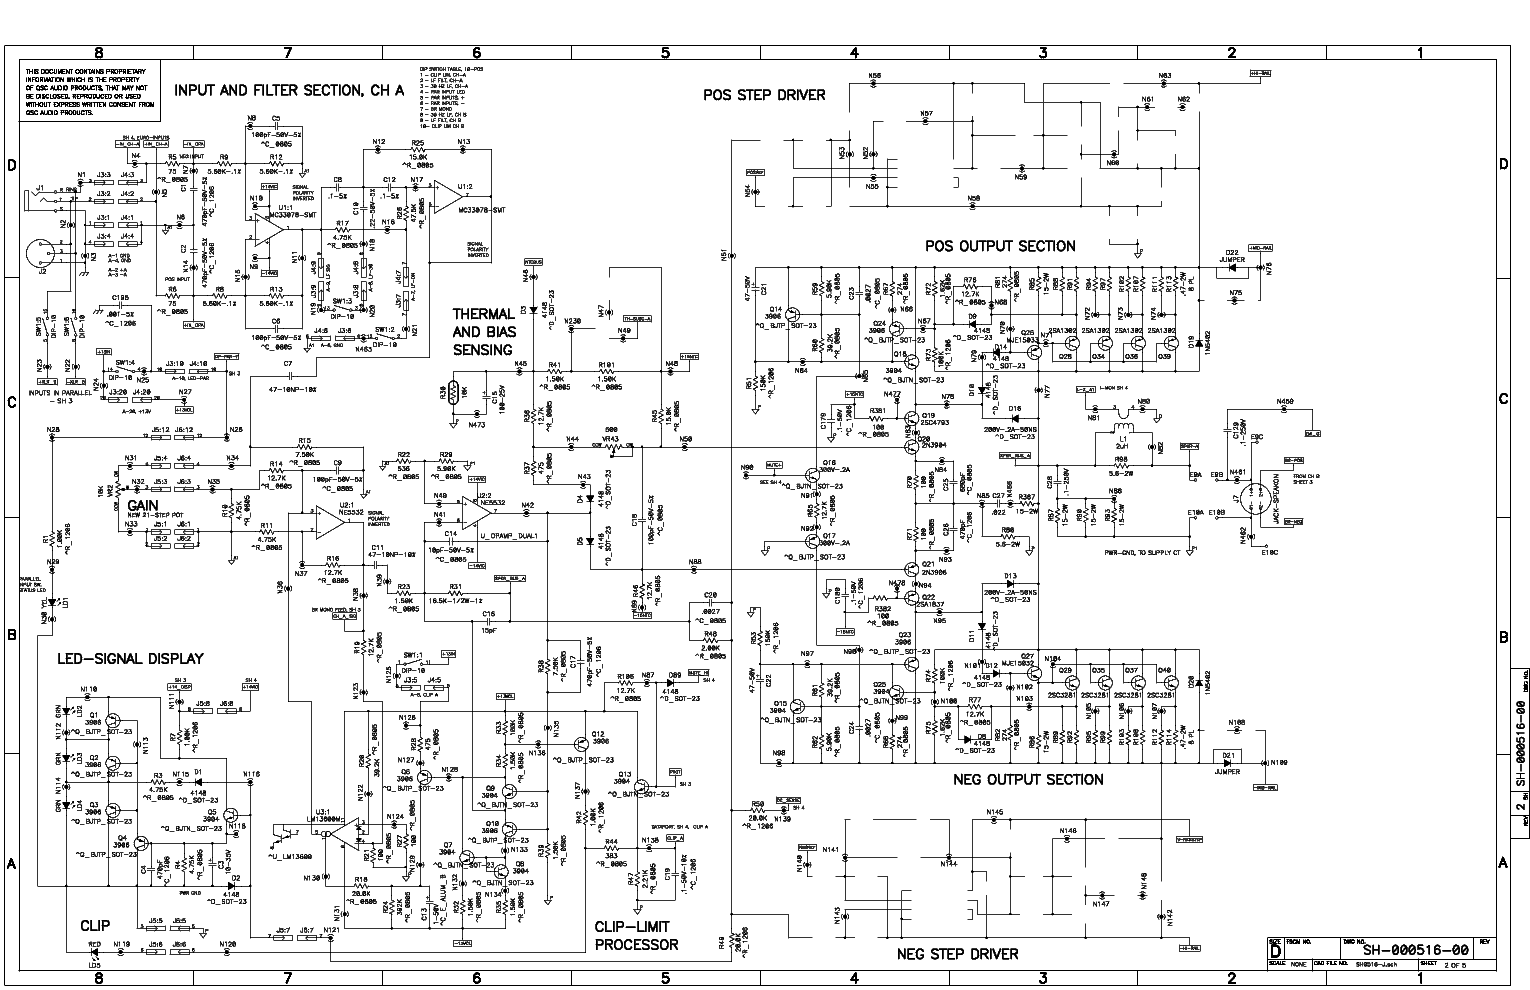 qsc_plx1602.pdf_2 Qsc Plx Schematic Diagram on isa 300ti, pl340 power supply, gx 3 amplifier, k-12 ksub, 1400 power amp, k10 speaker, usa 900 amplifier,